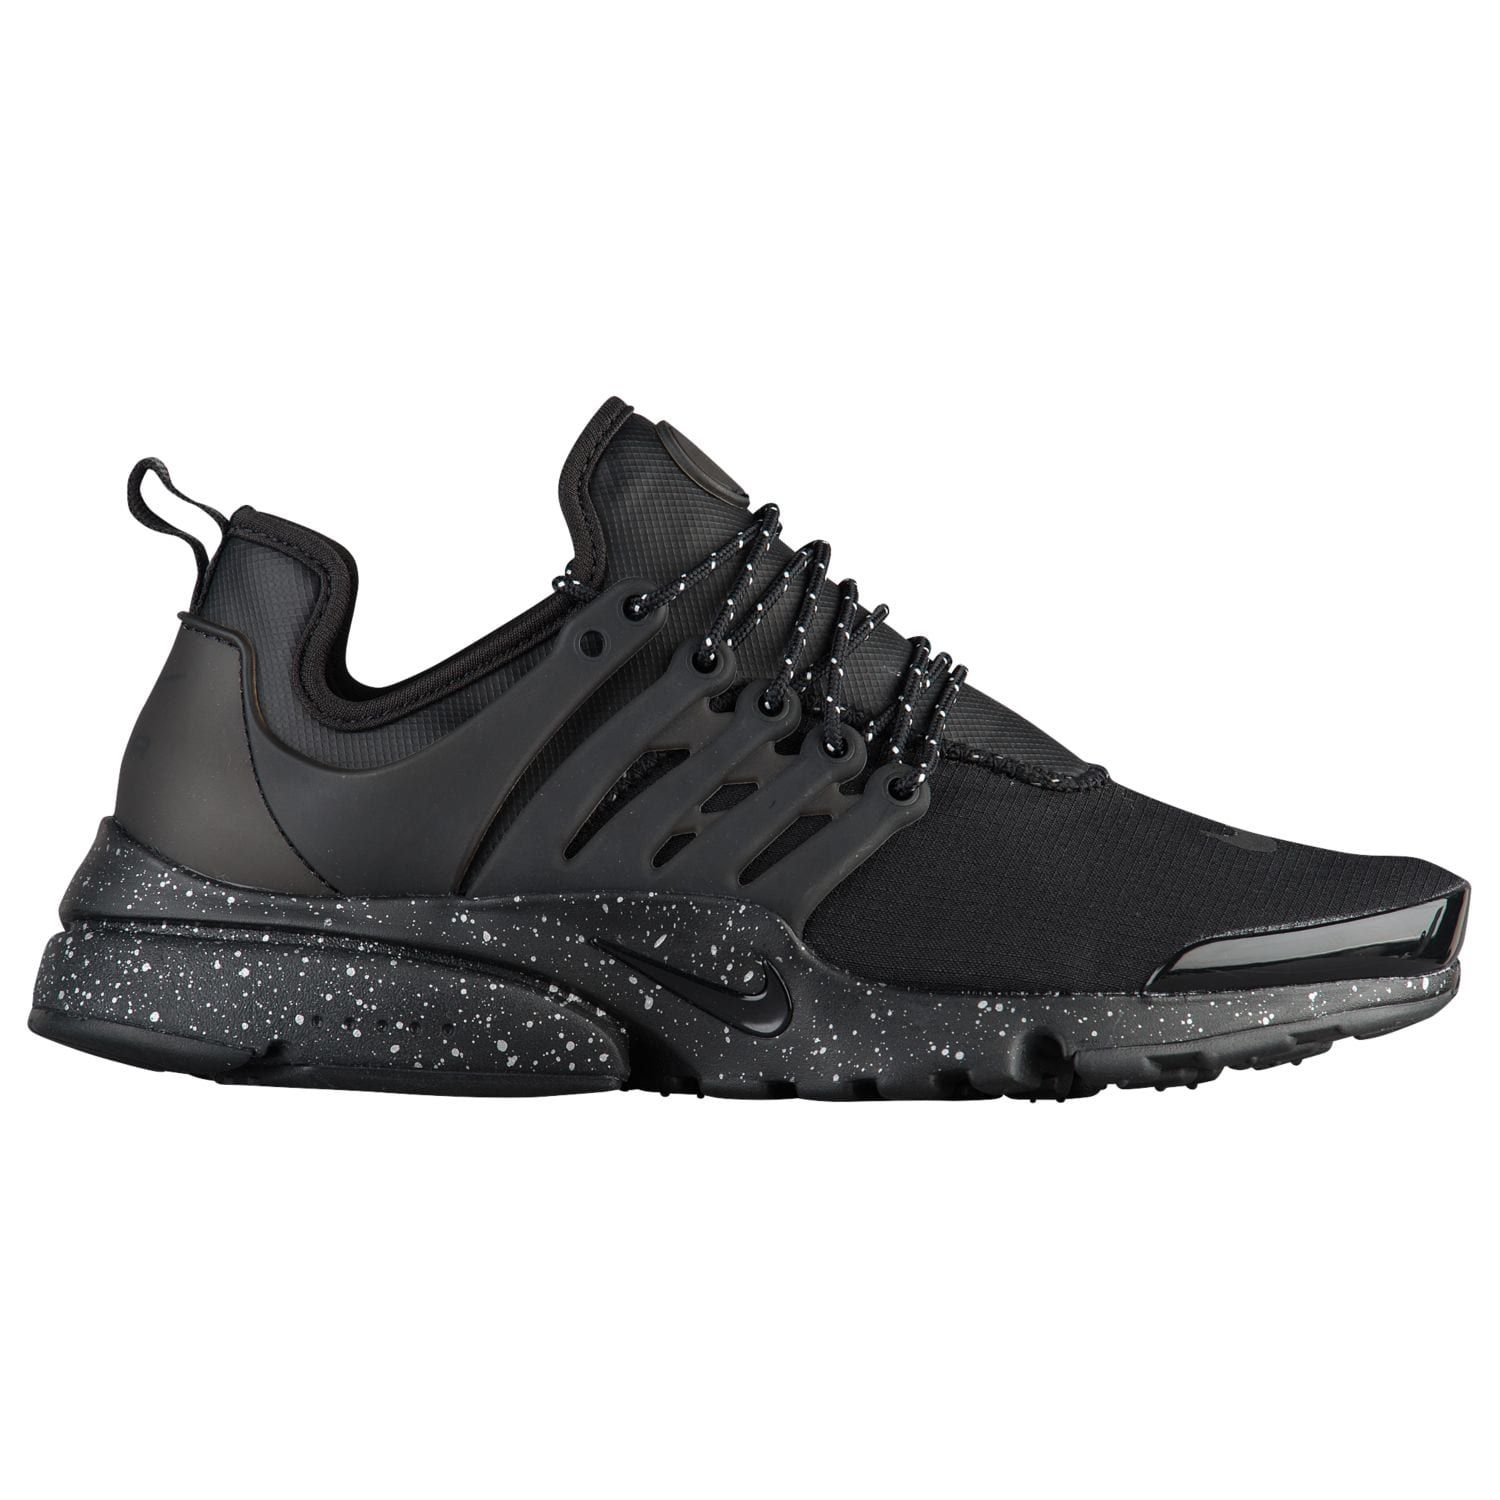 size 40 7443a cc65c Nike Air Presto Ultra - Women s - Casual - Shoes - Black Black Dark Grey Metallic  Silver